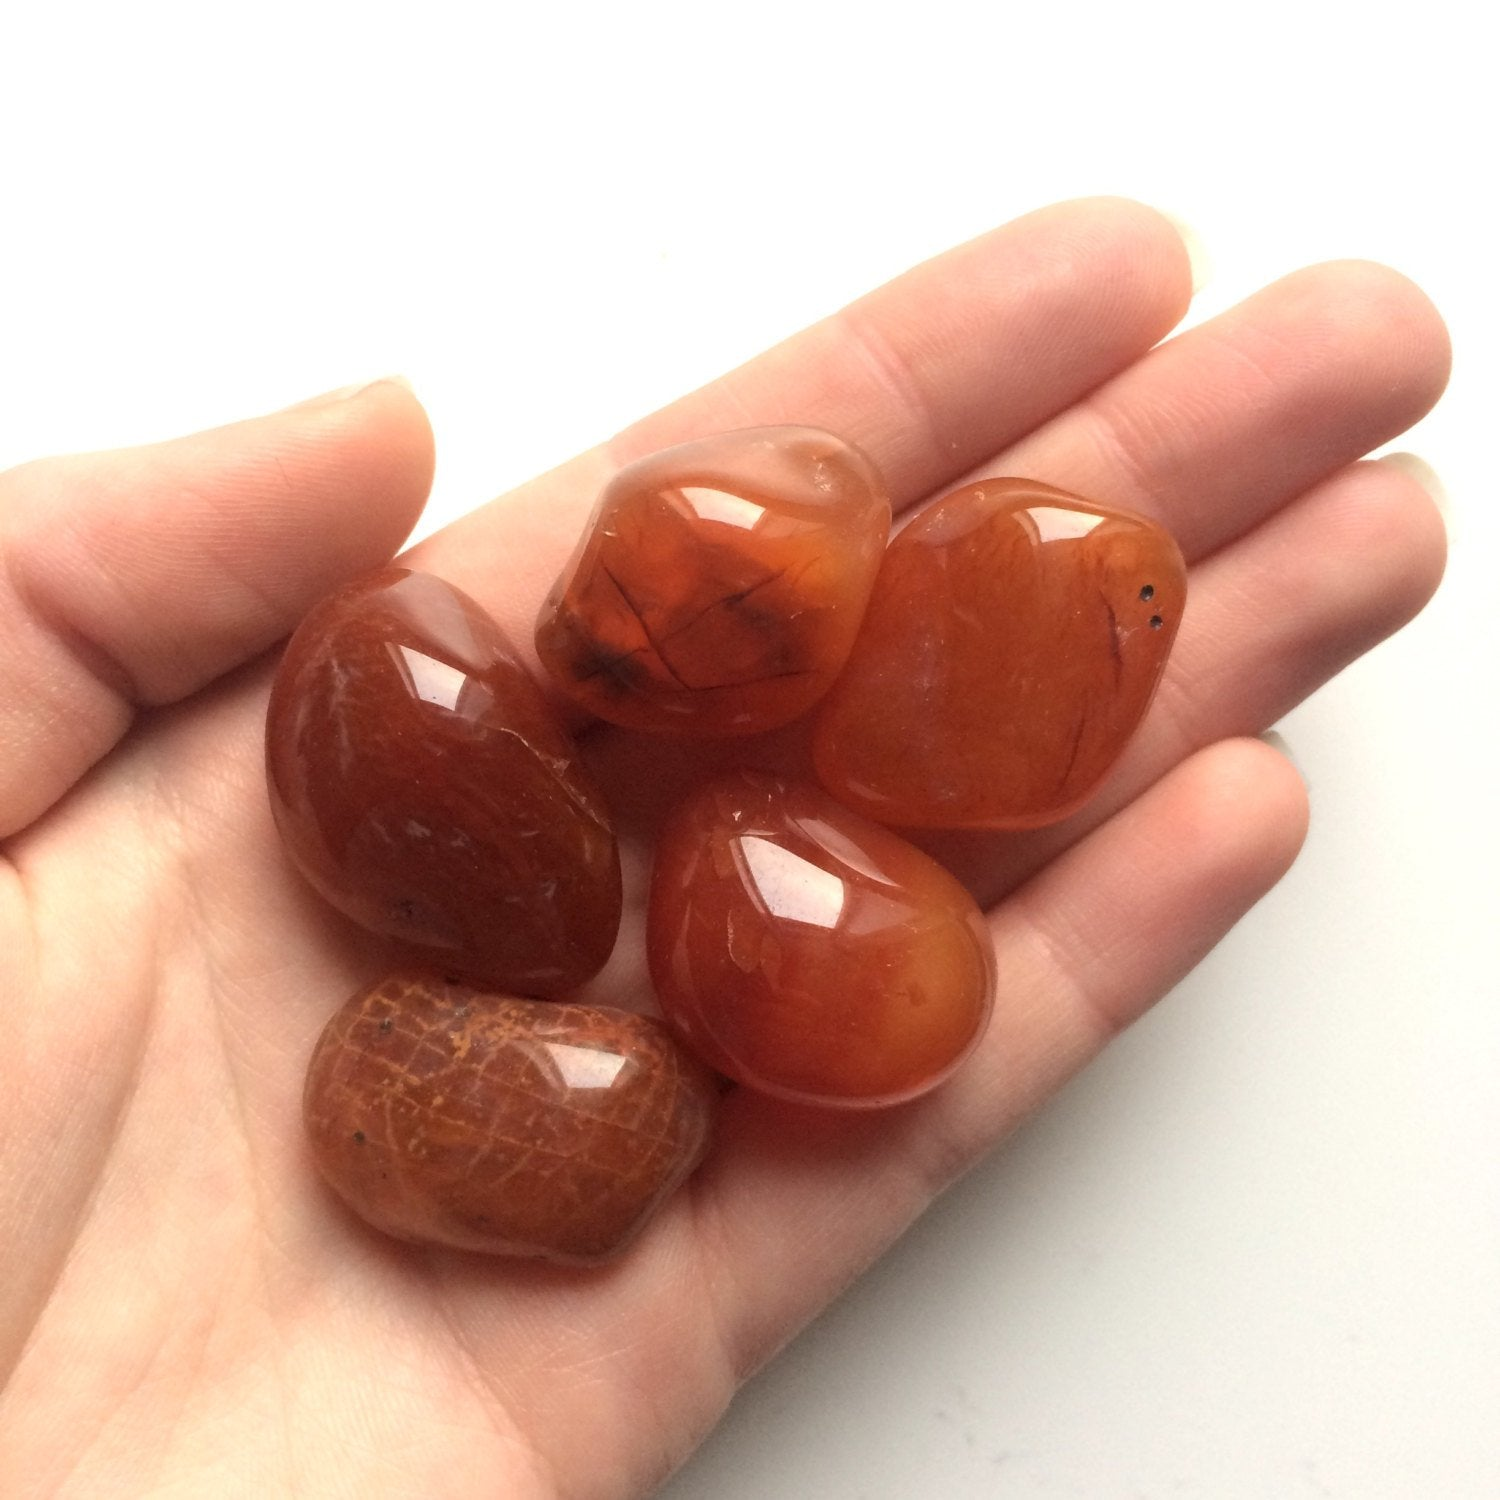 Carnelian tumbled stone smooth stone worry stone 30mm Virgo